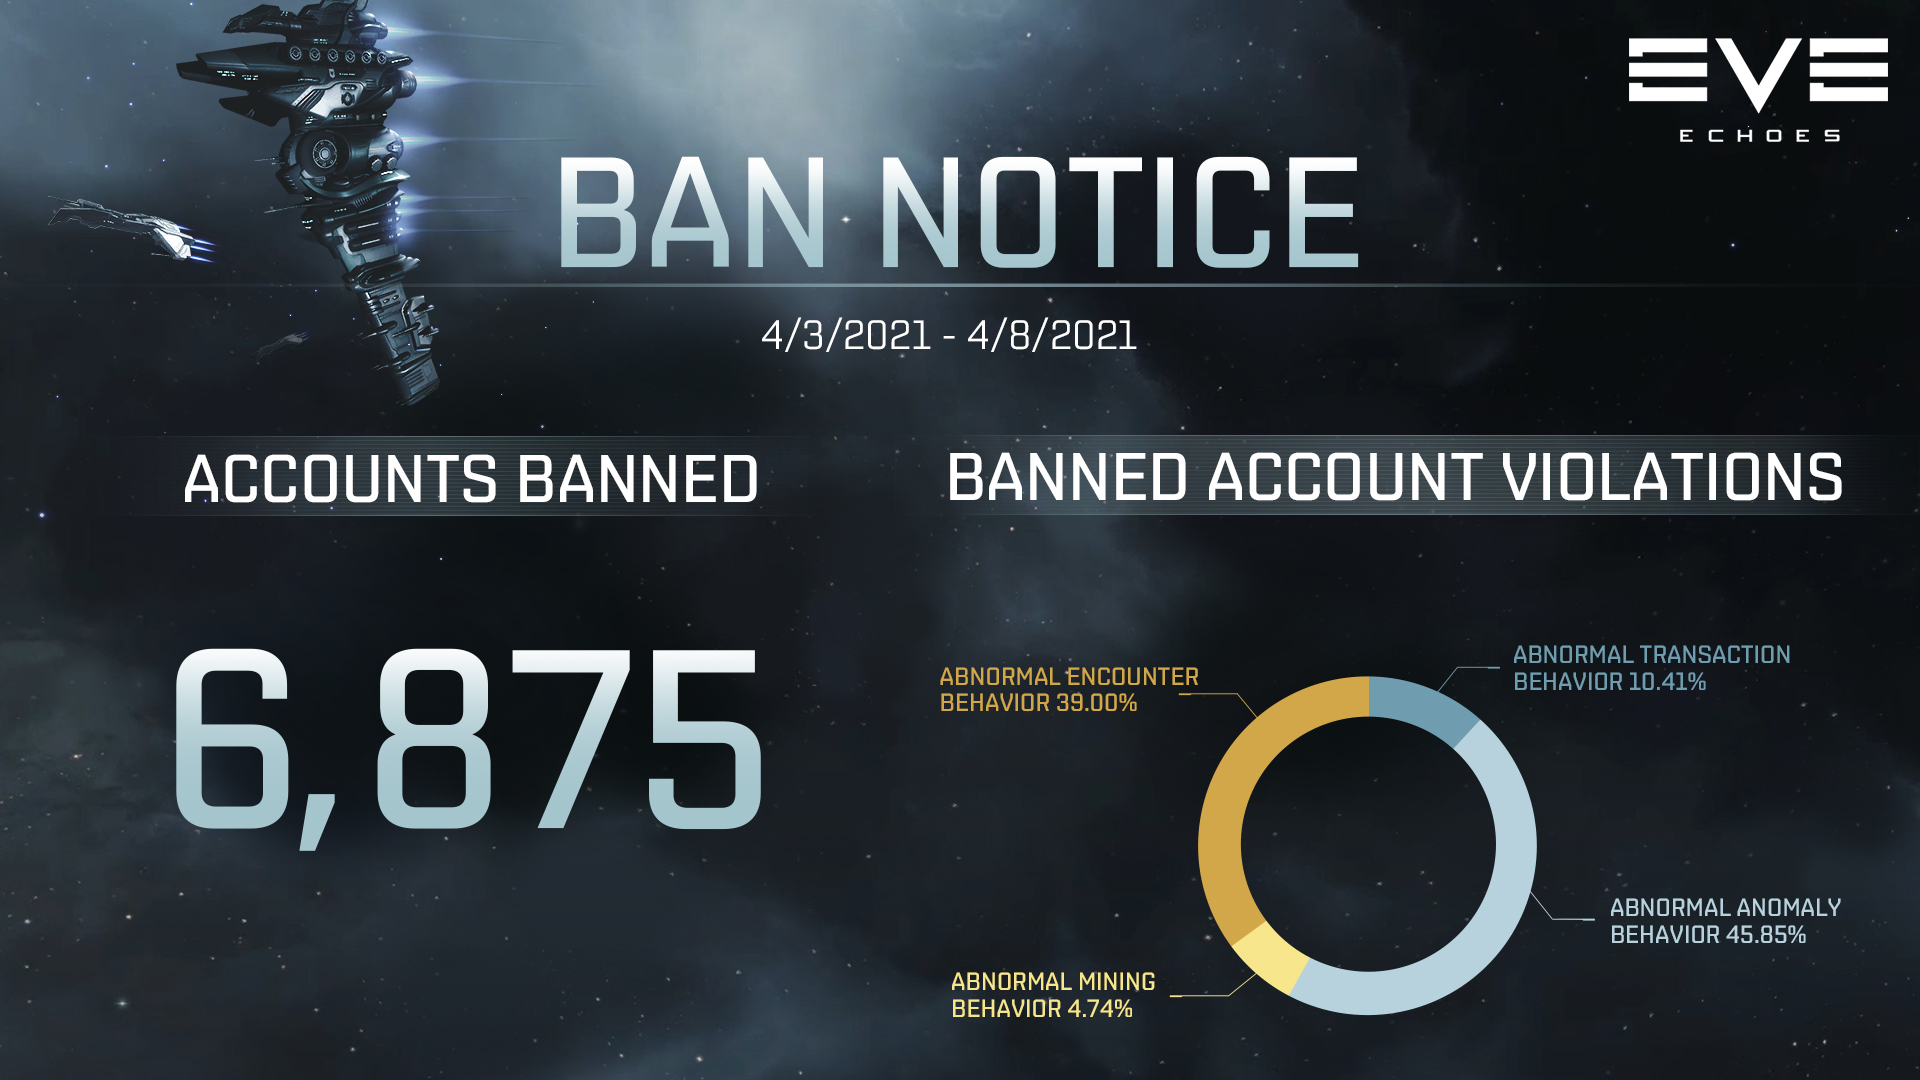 Ban Notice for 04/03-04/09